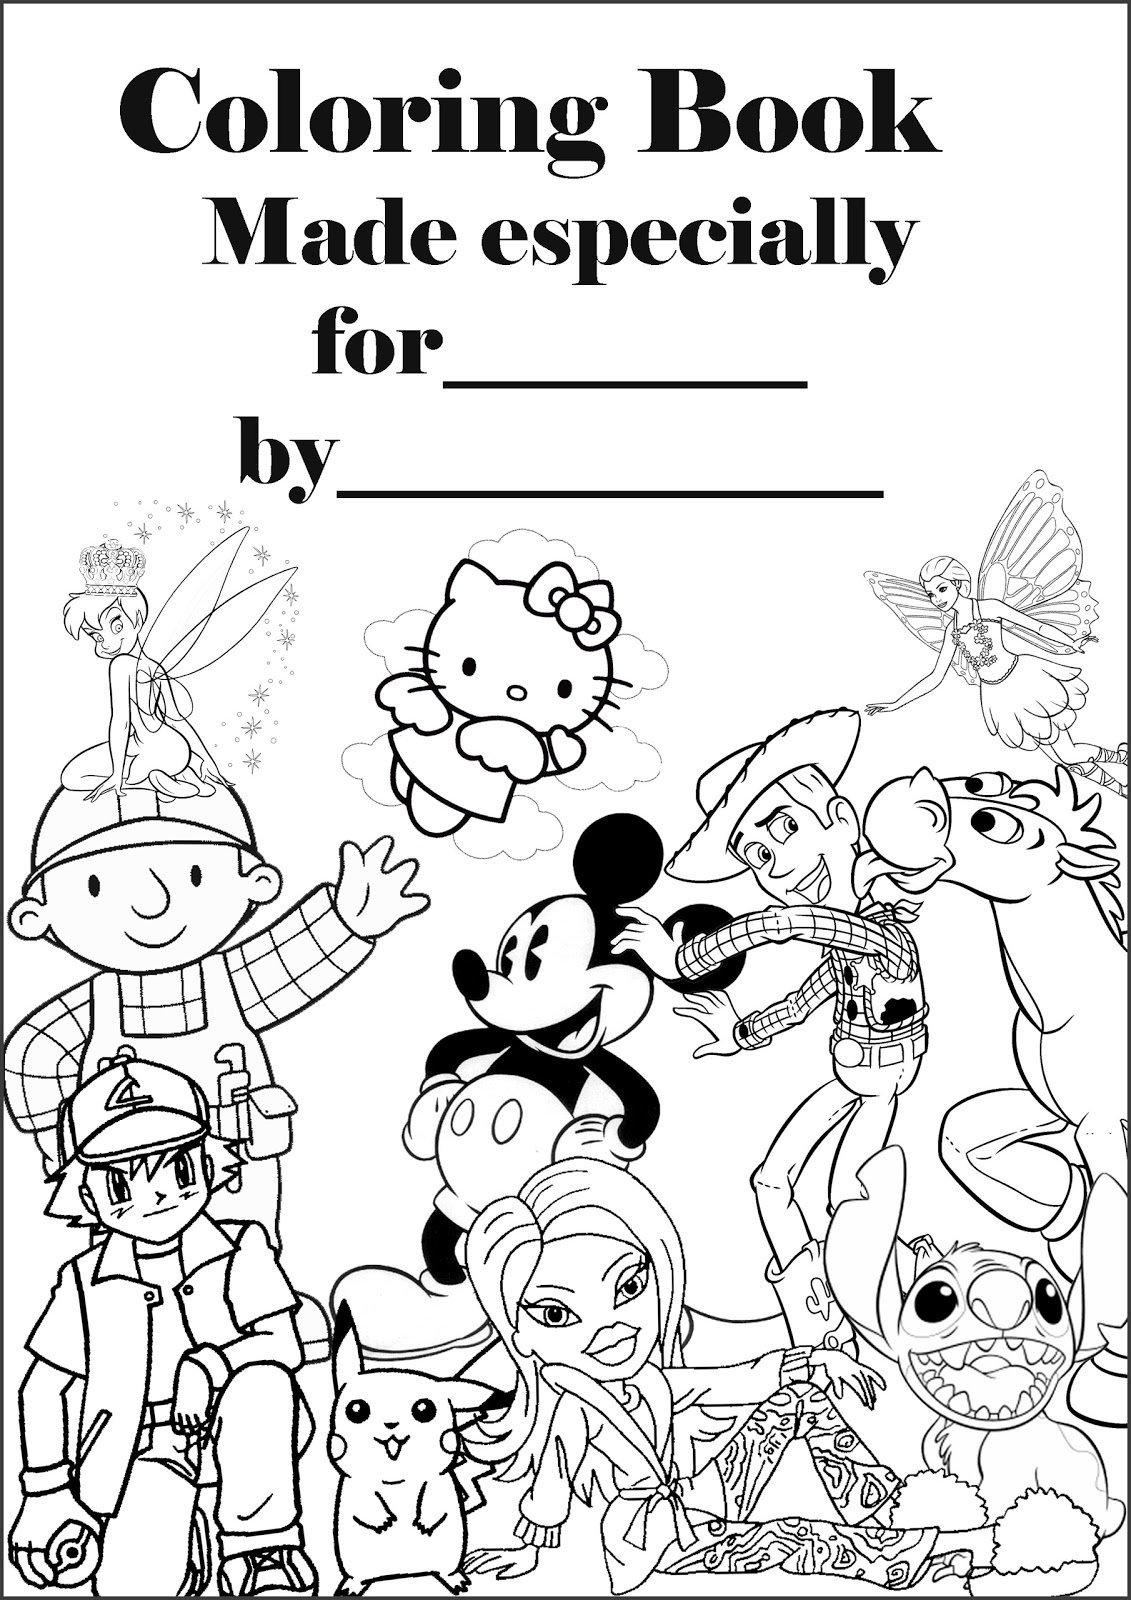 coloring book pages to print - printable coloring book cover page